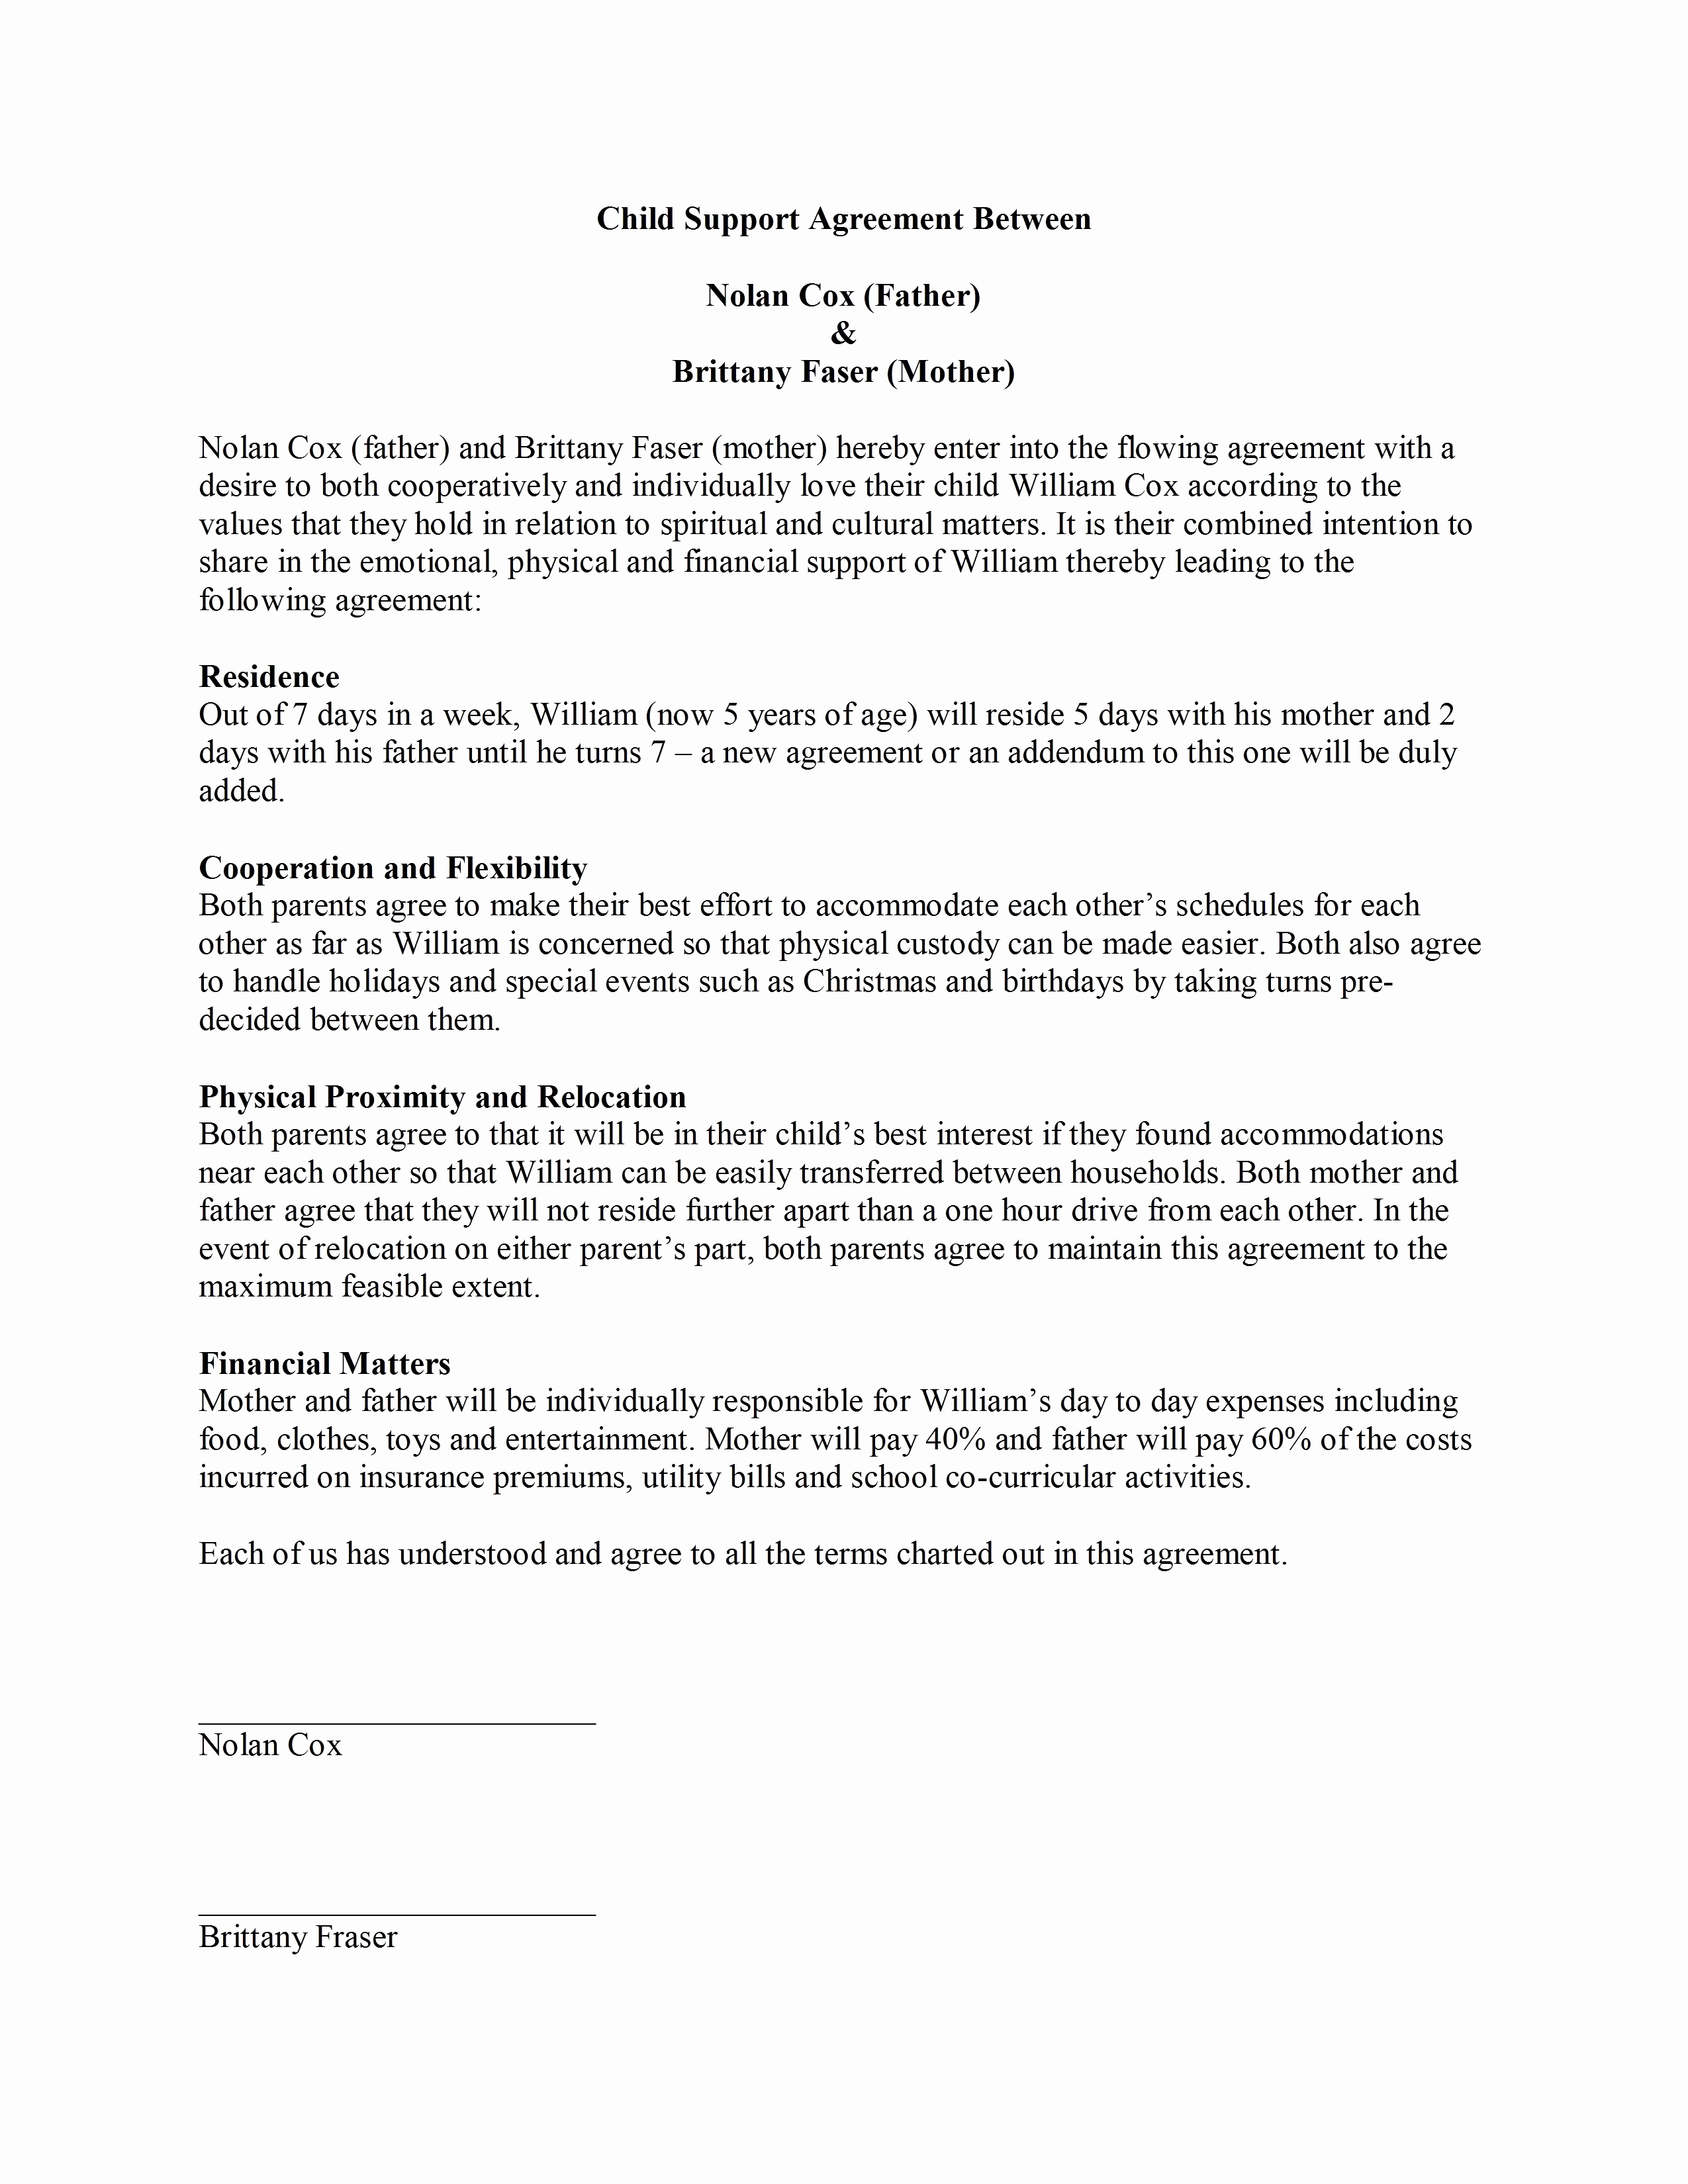 Child Support Letter Template - Sample Child Support Letter Template New Job Fer Letter Template Us